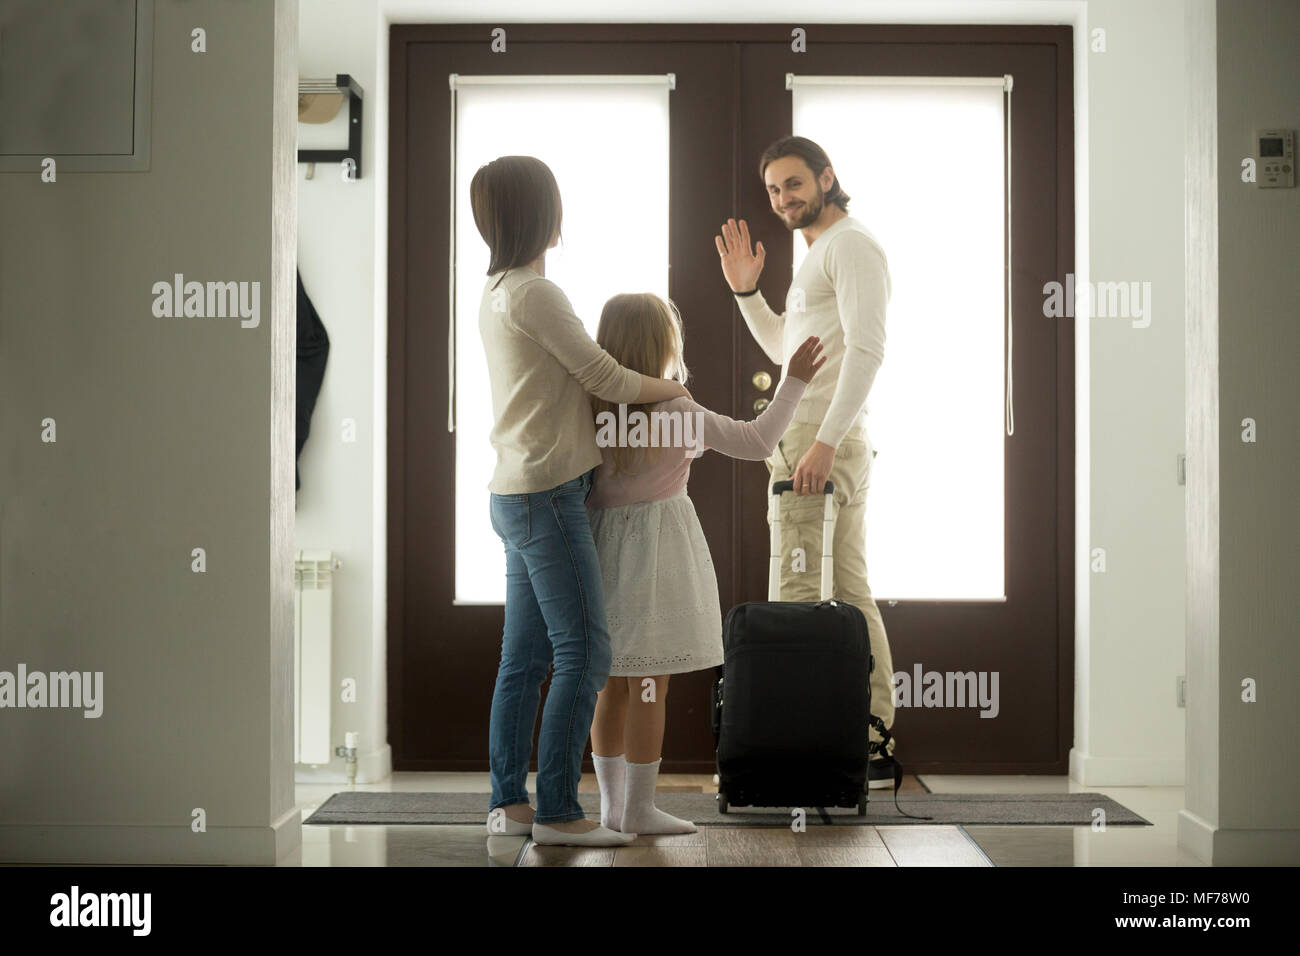 to a daughter leaving home